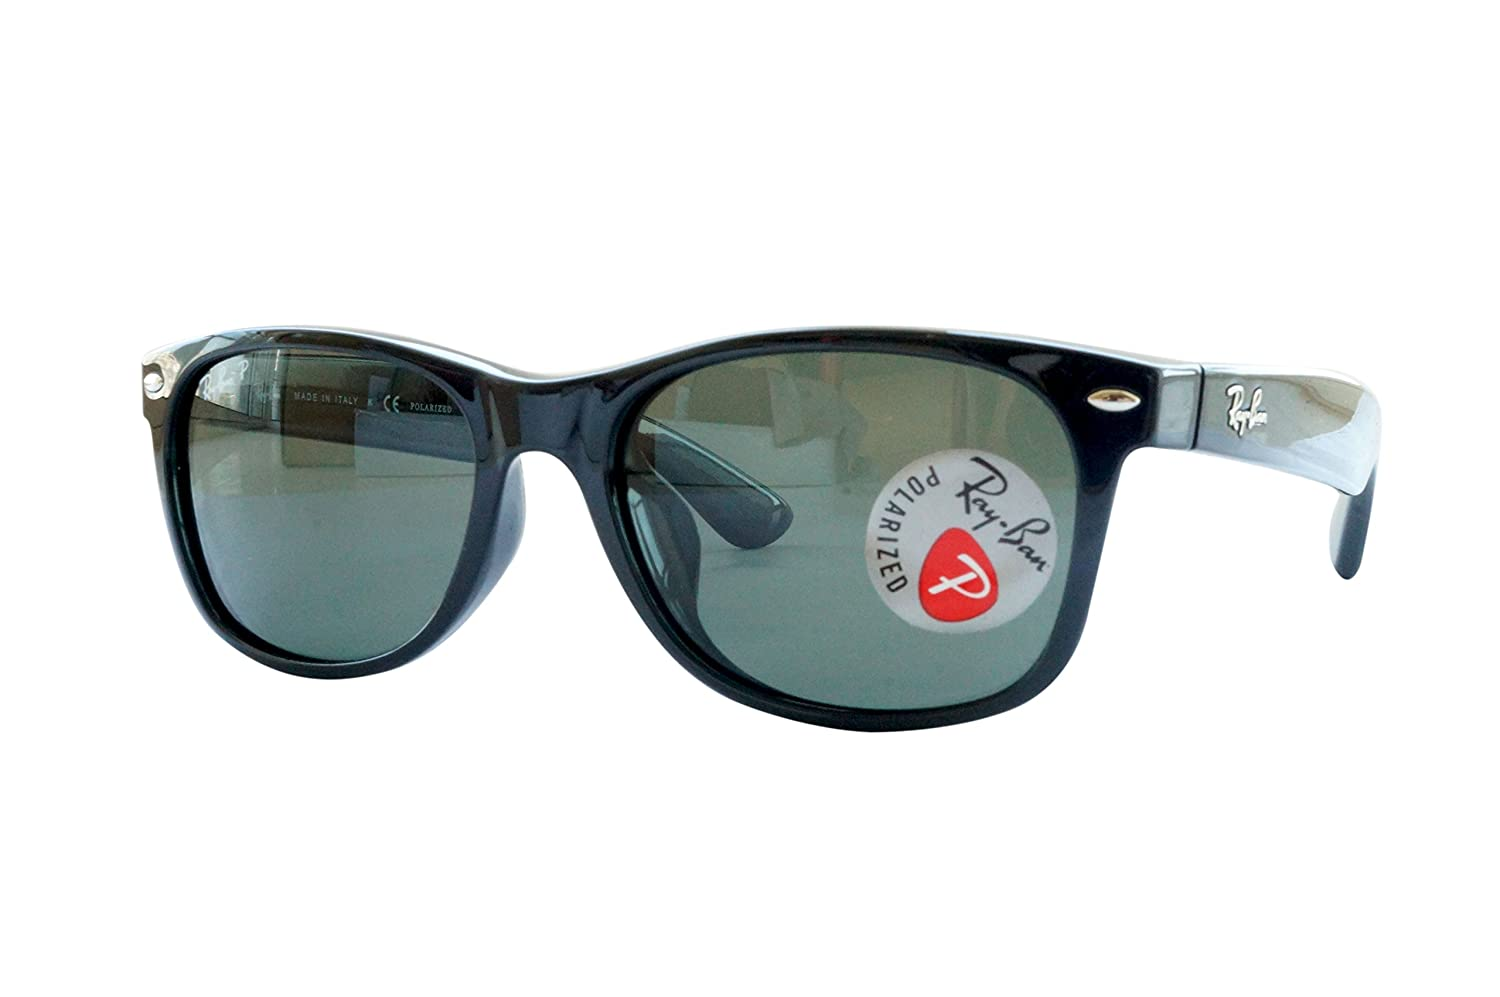 581875f0f2 Ray Ban Men RB2132F New Wayfarer Classic Polarized Sunglasses